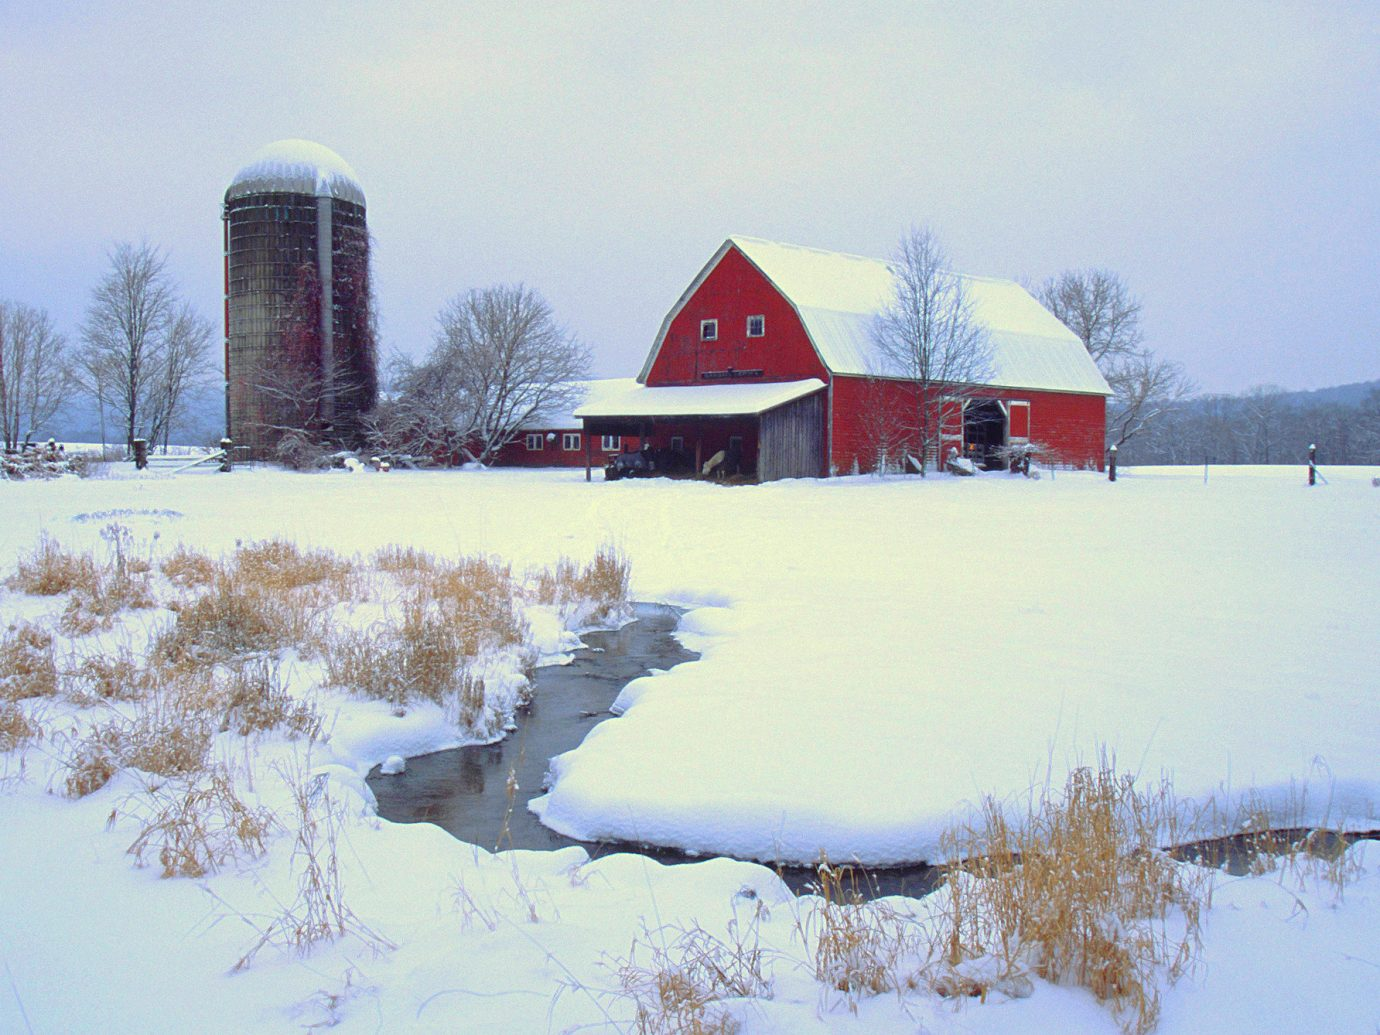 Weekend Getaways outdoor sky snow tree Winter water house freezing reflection daytime ice building barn